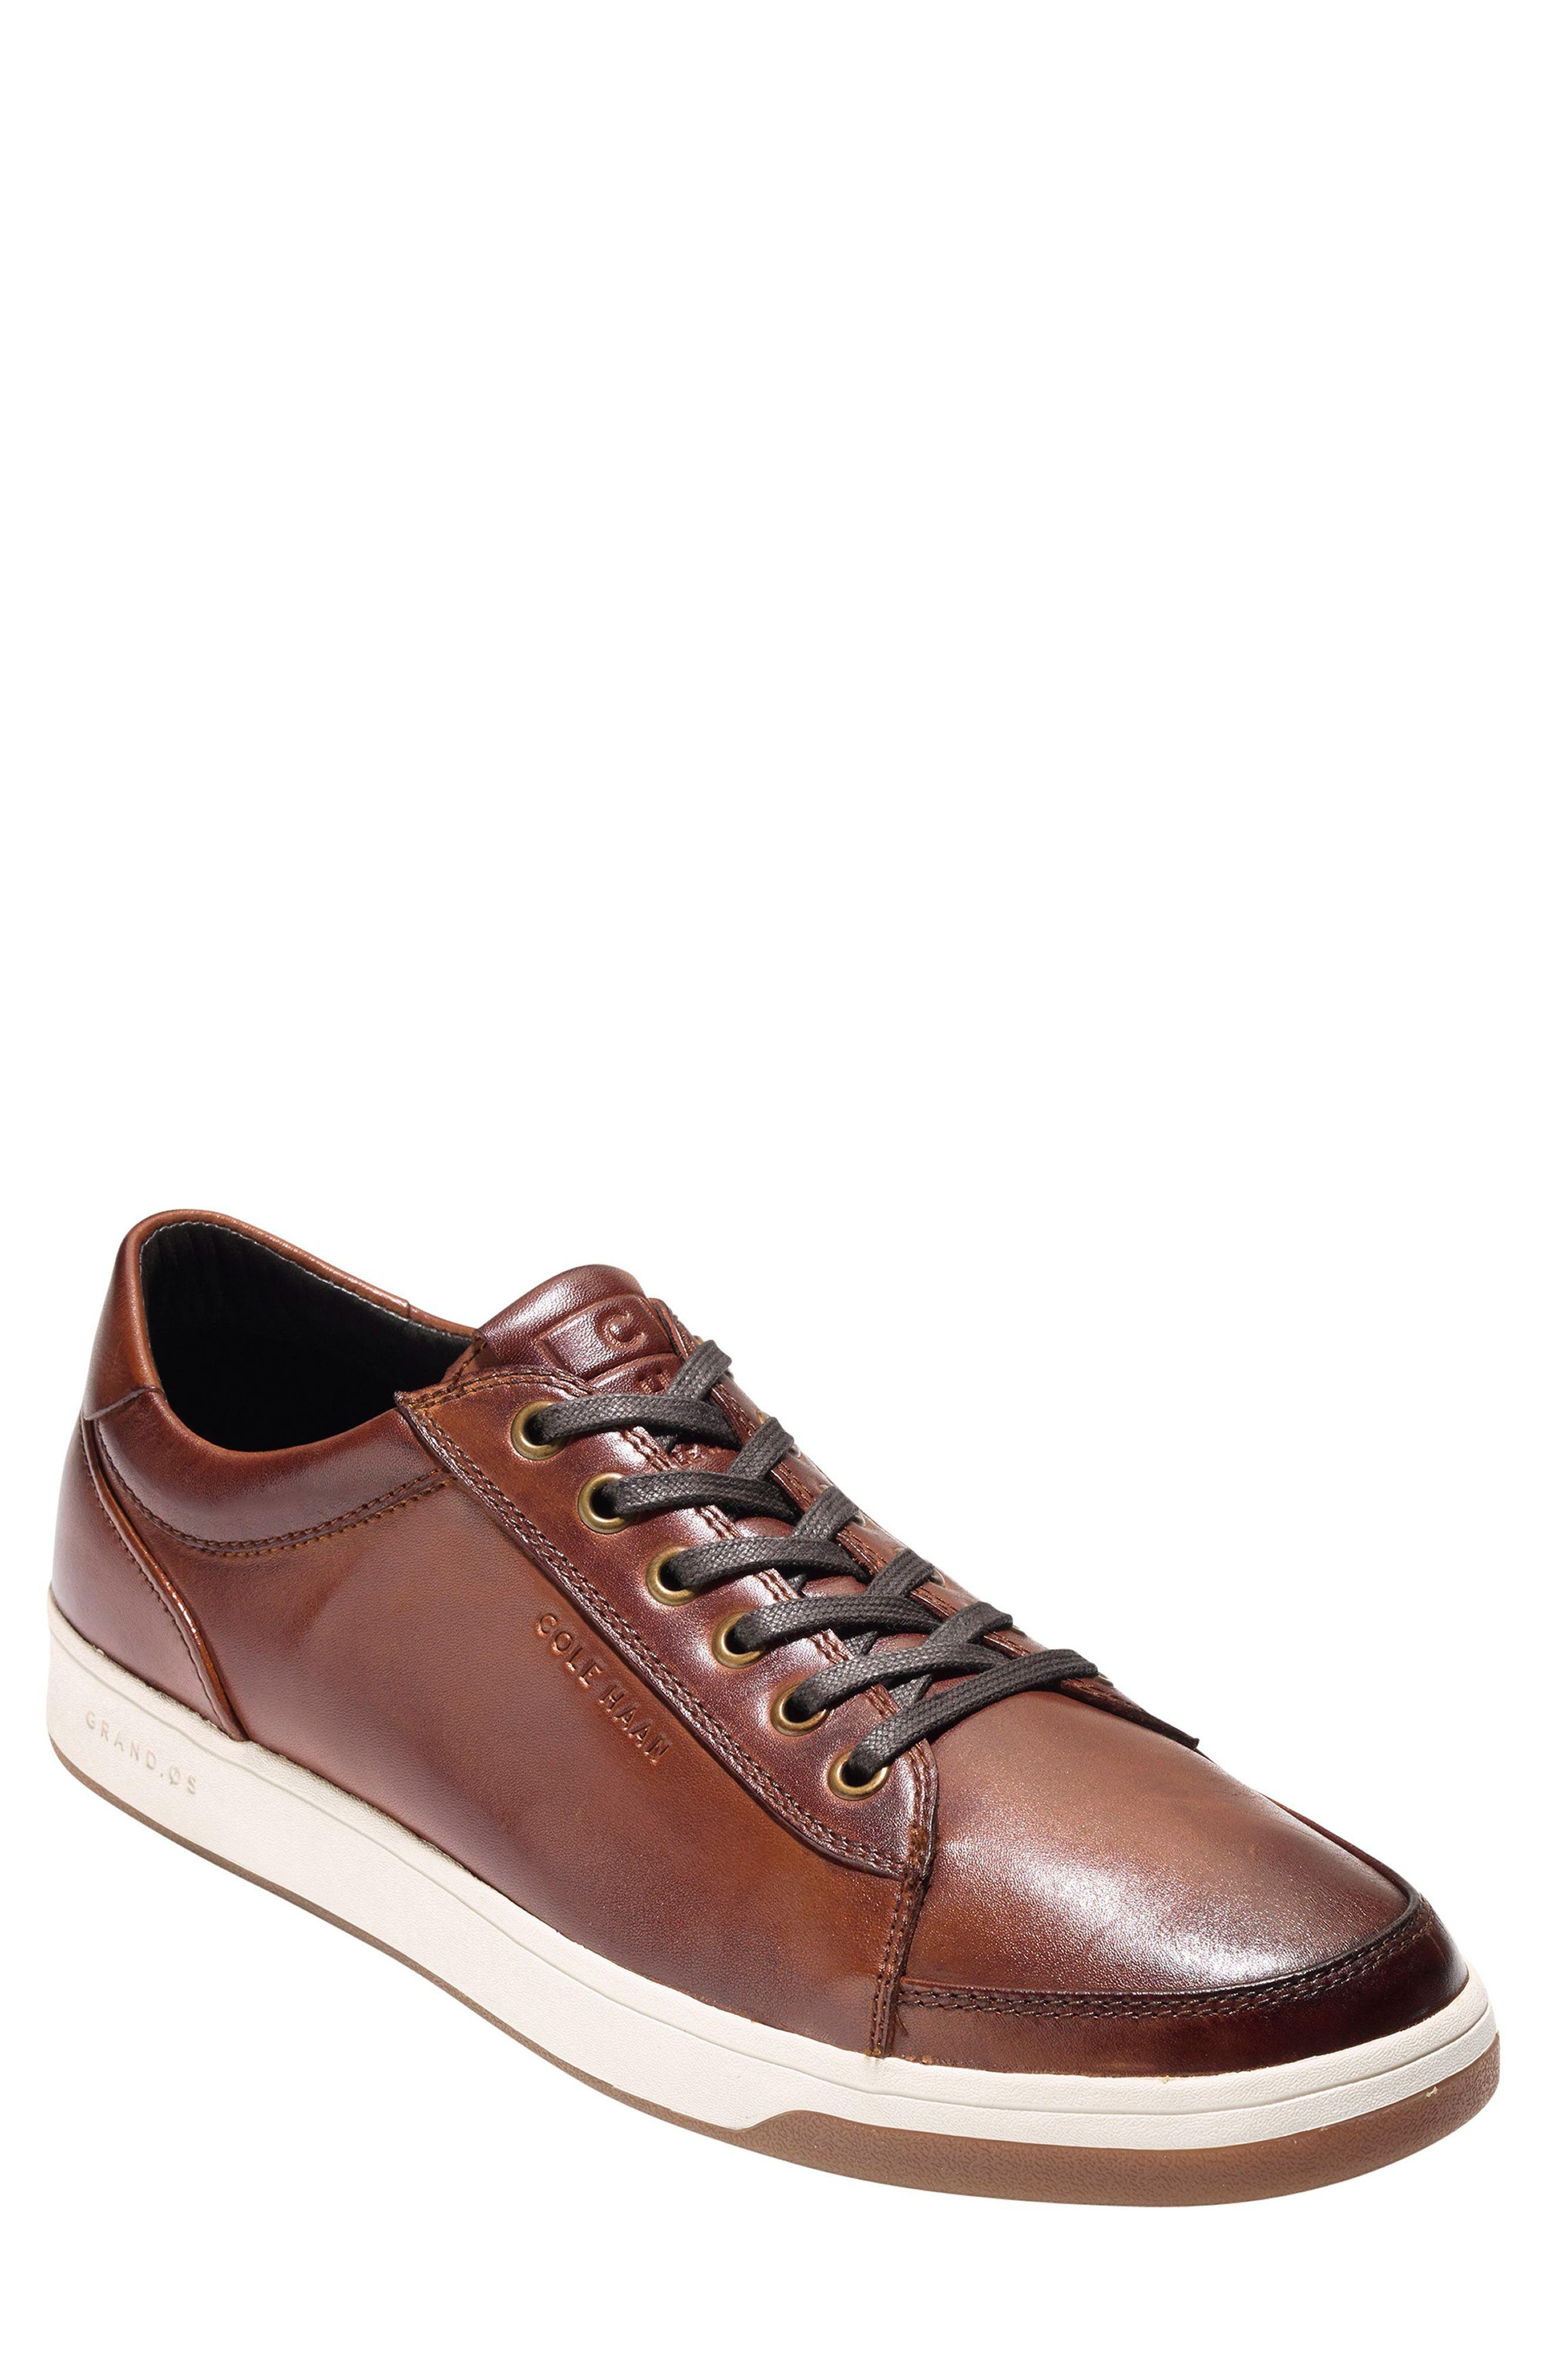 COLE HAAN GrandPro Spectator Sneaker, Main, color, WOODBURY LEATHER